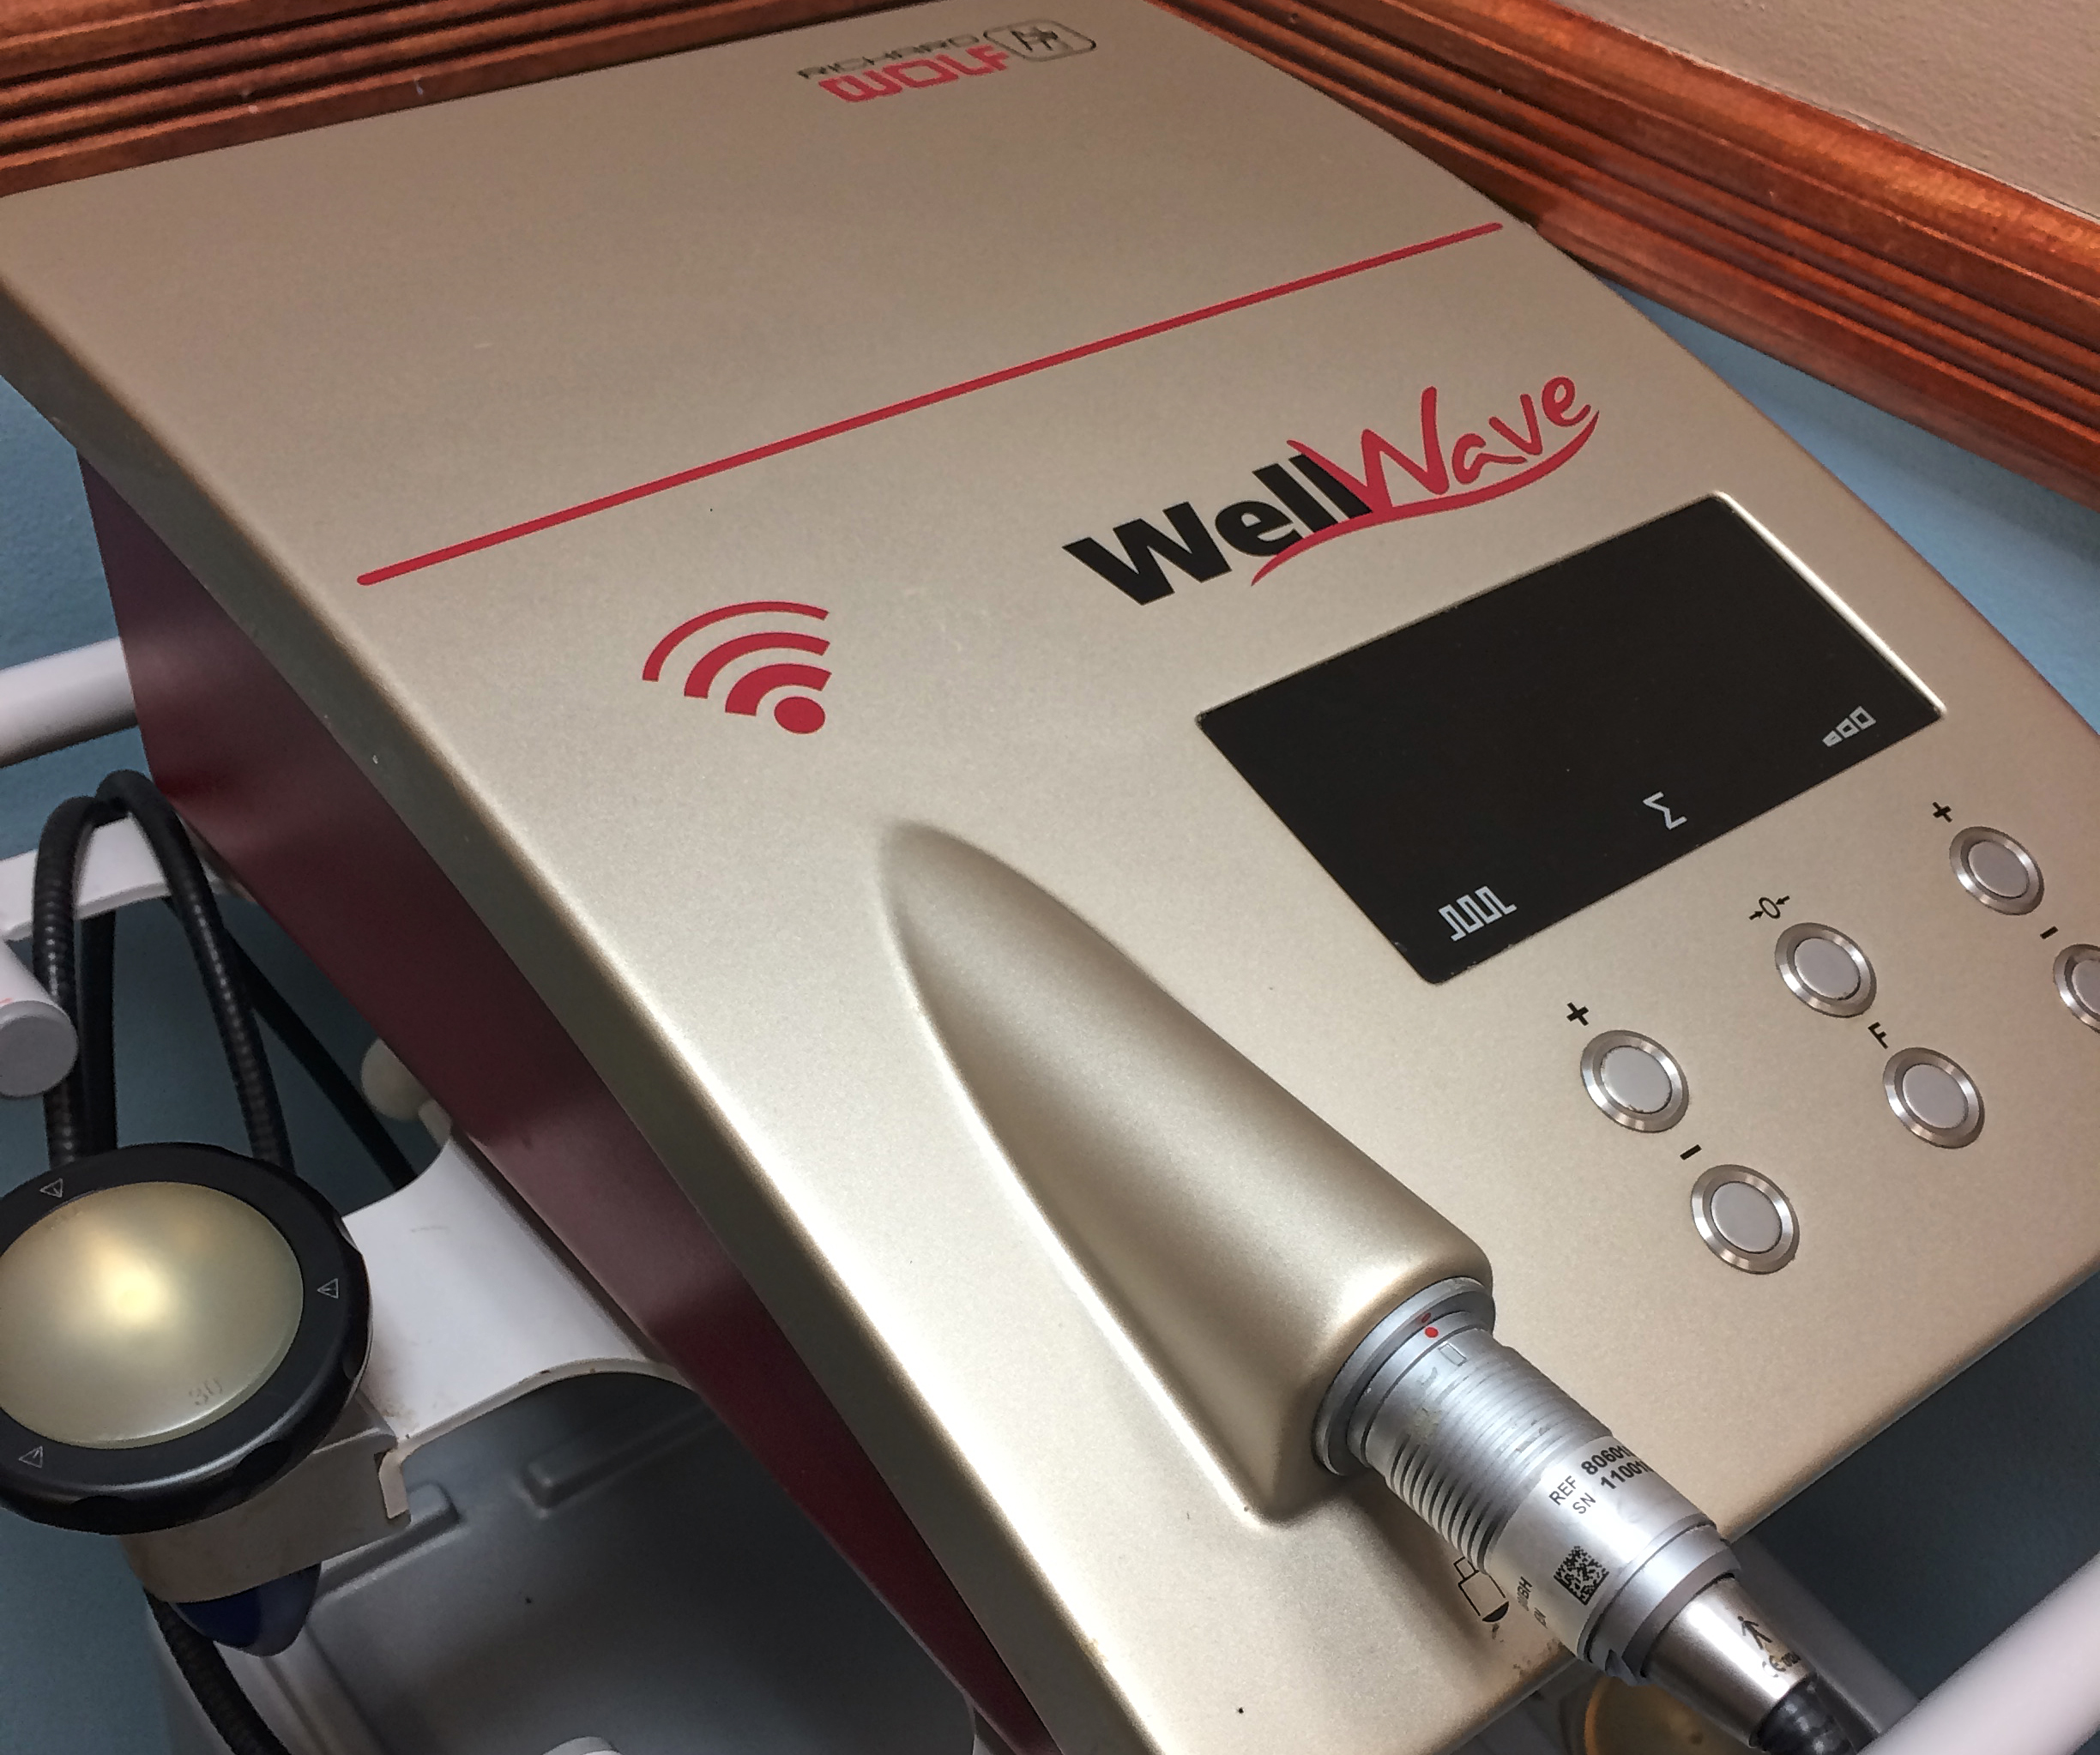 Wellwave Acoustic Compression Therapy